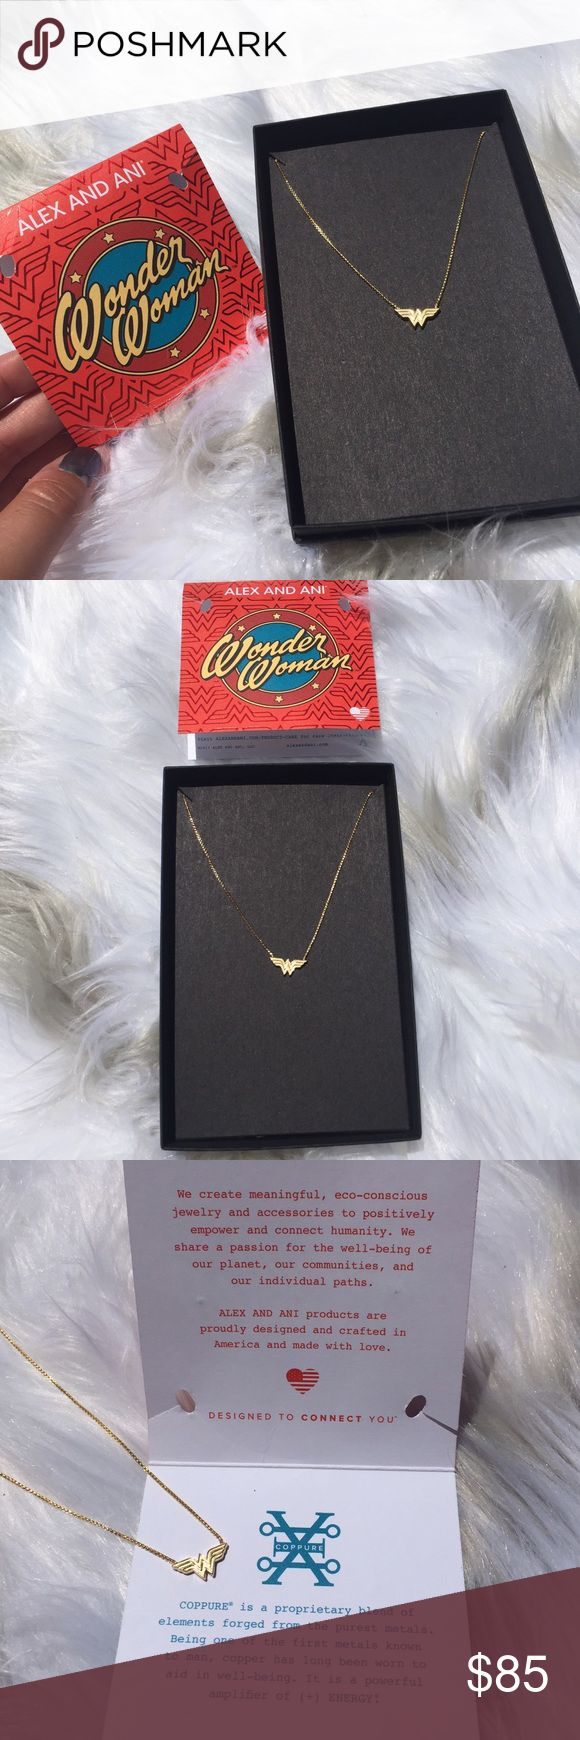 ✨NEW Alex & Ani 14KT Gold Wonder Women Necklace •brand new!!! •new collection •wonder women logo!!! •must need •14KT gold plated •21 inch adjustable chain necklace Alex & Ani Jewelry Necklaces